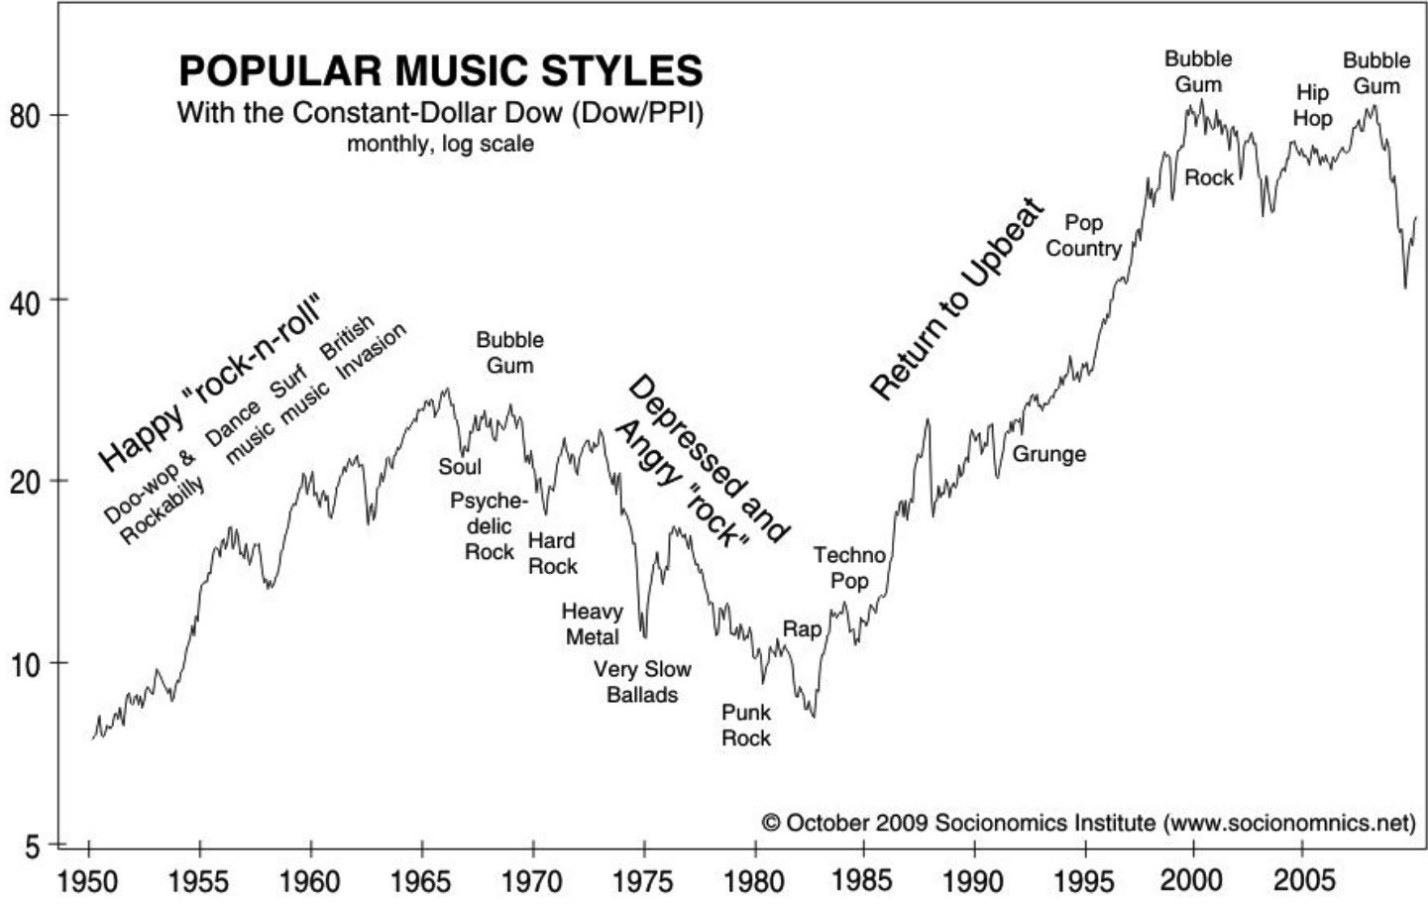 You may not know who Luis Fonsi, Daddy Yankee and DJ Khaled are. But they're important to know because there was a study about how pop music relates to the stock market.